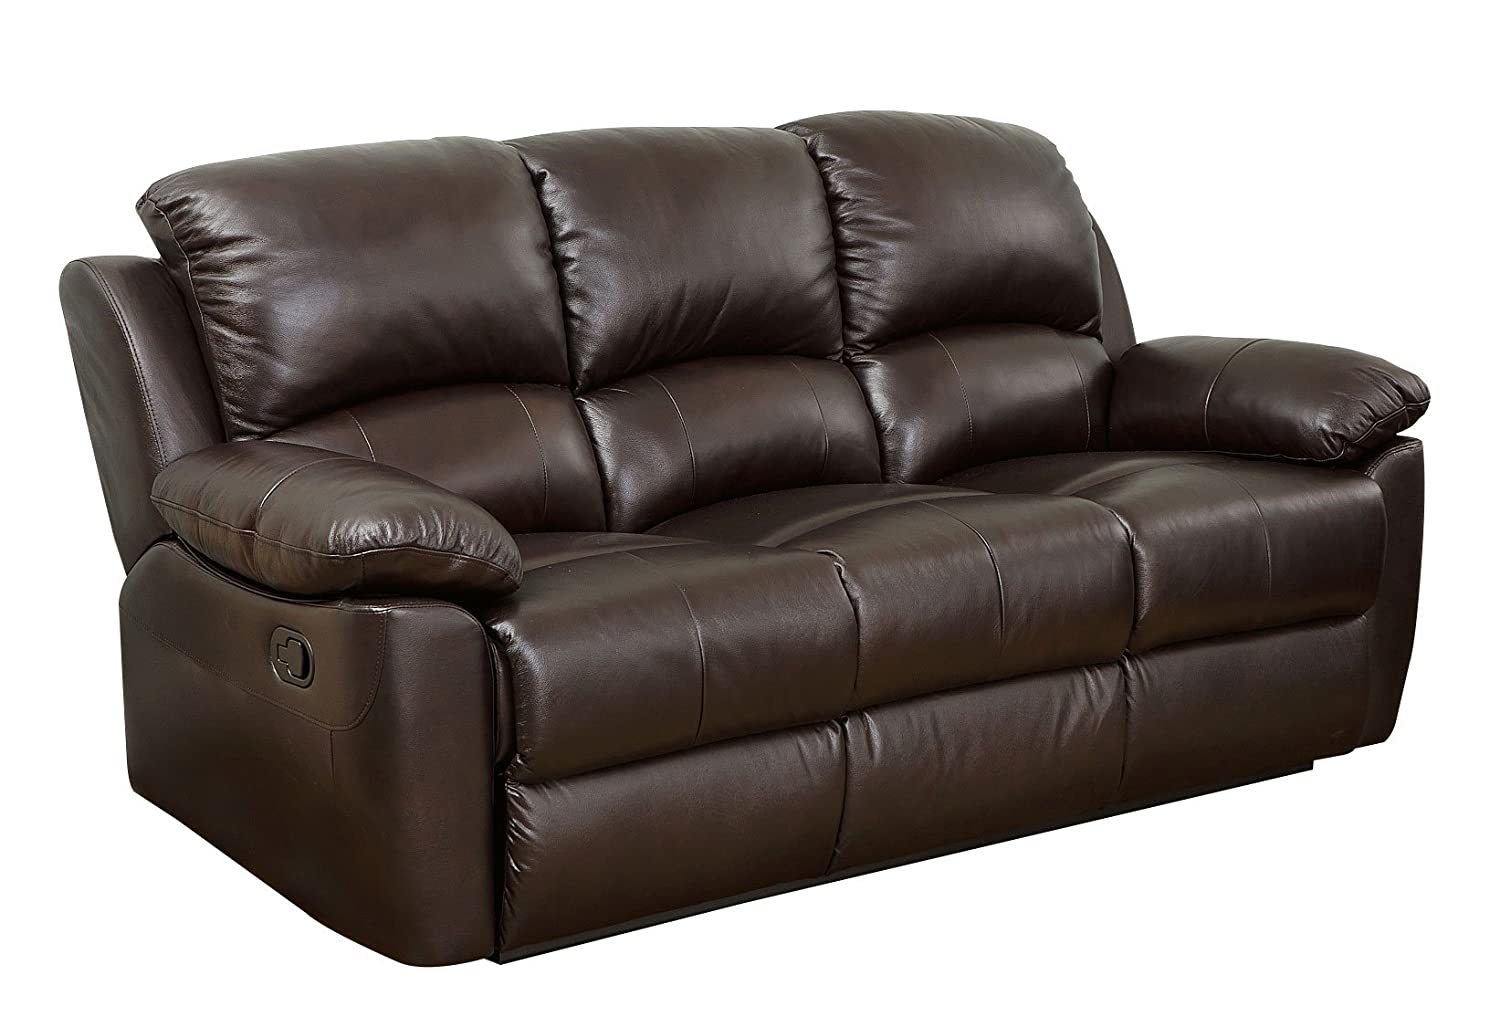 reclining leather sofa, reclining leather sofas, best reclining leather sofa, best reclining leather sofas